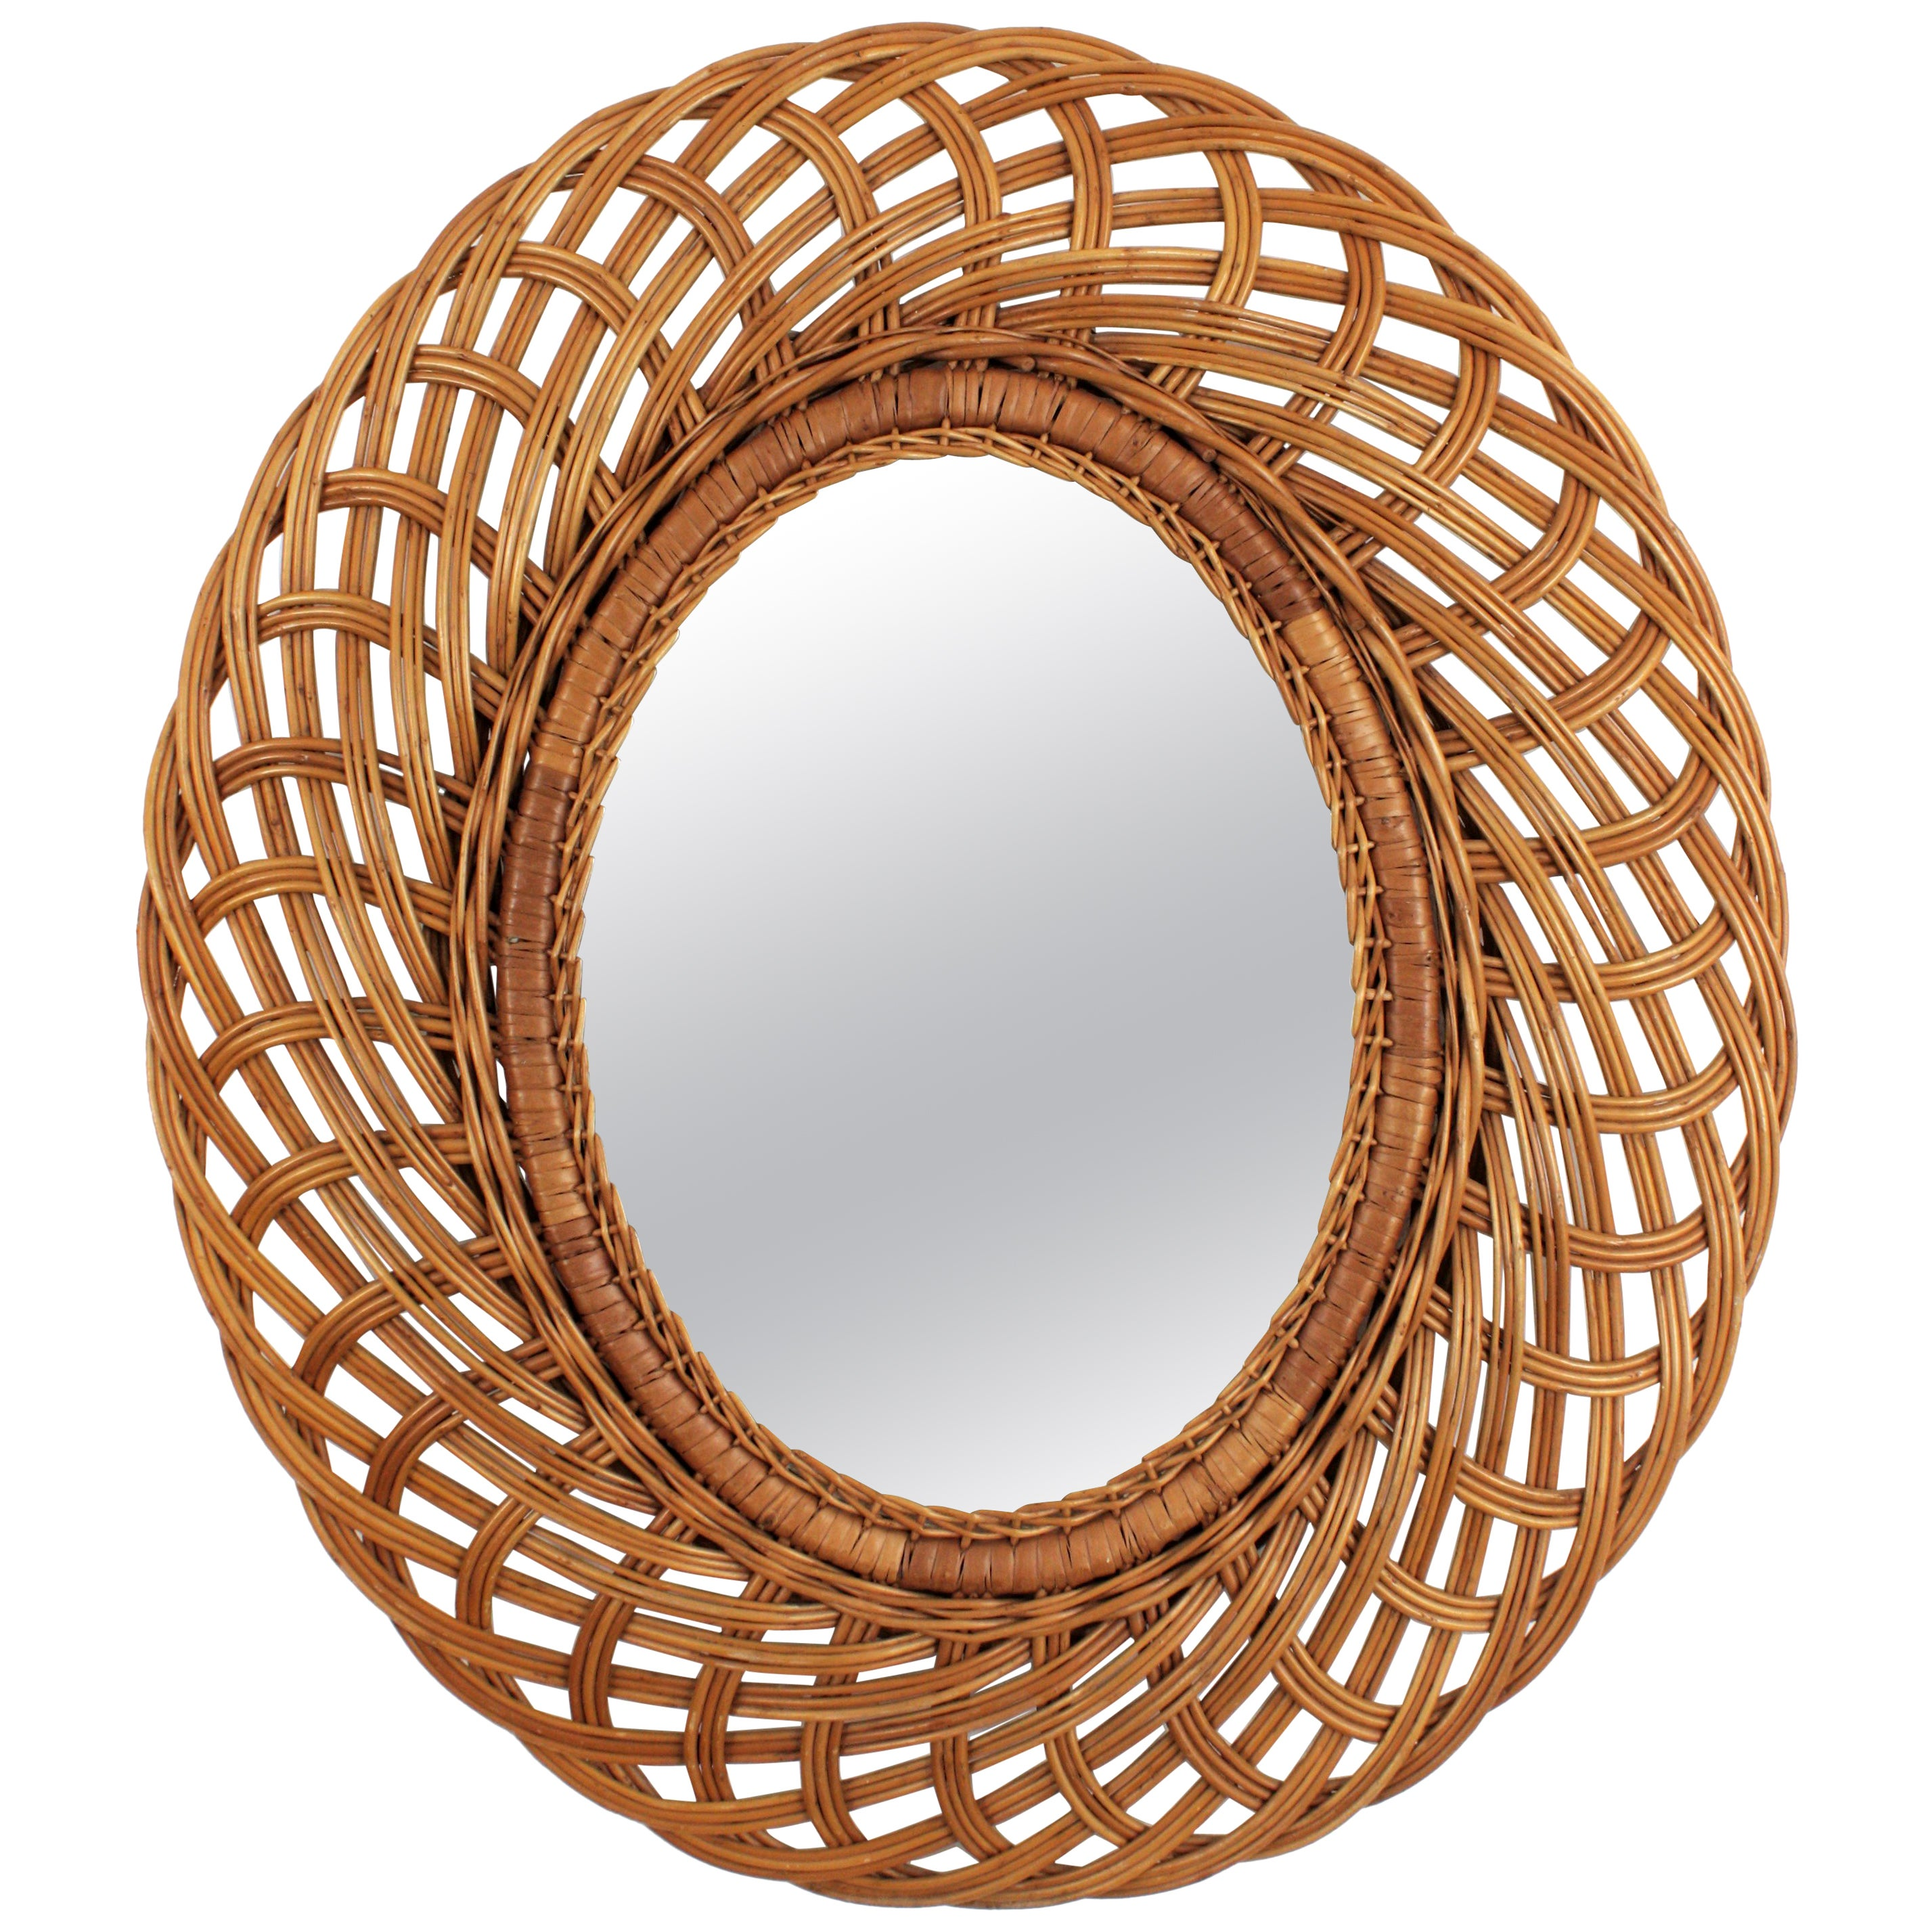 Oval Mirror Handcrafted with Woven Rattan, Bohemian Style , Spain, 1960s